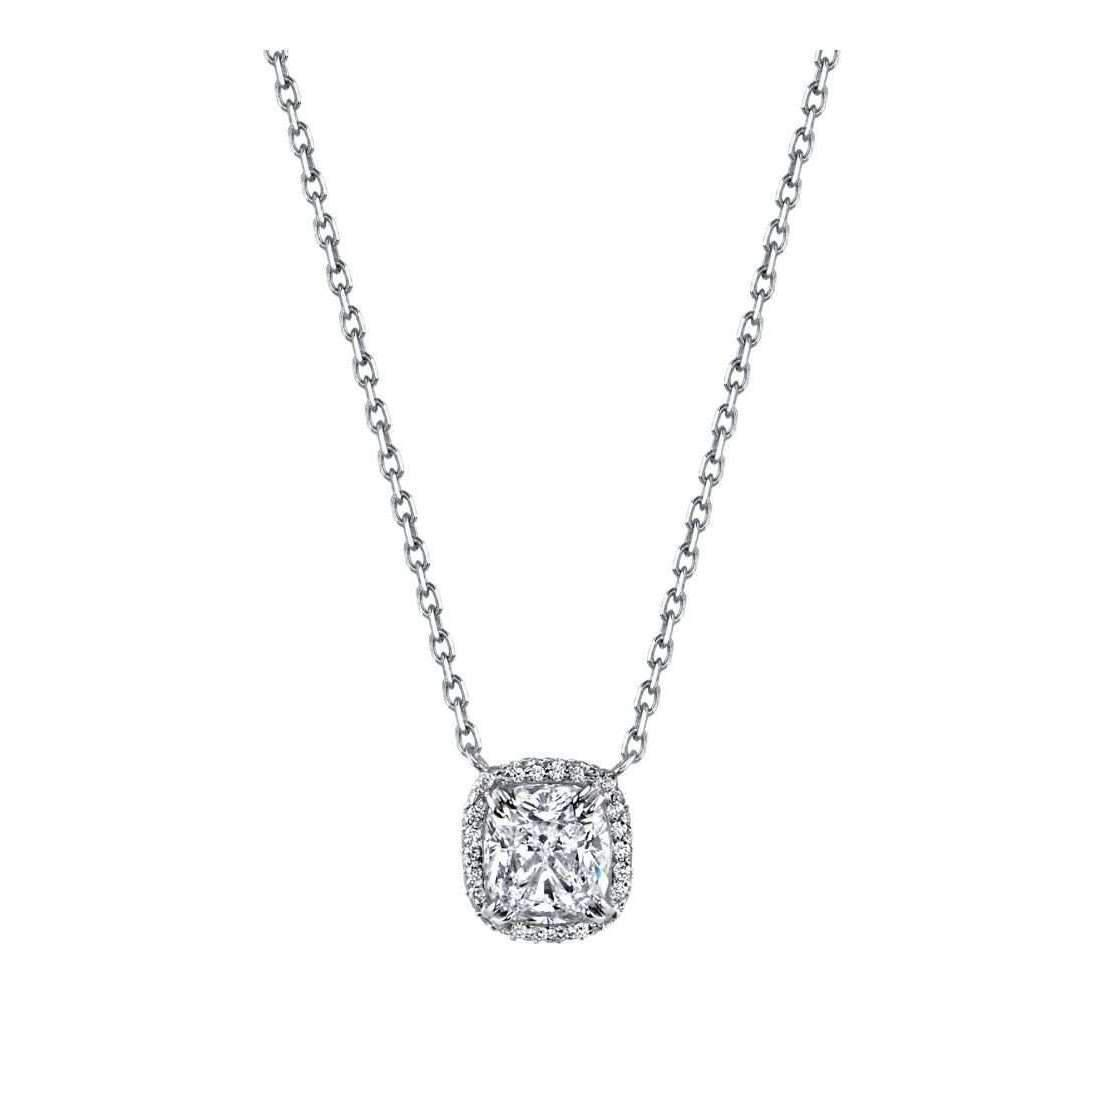 Harry Kotlar Rose Cut Oval Diamond Solitaire Necklace - 16 6Uf1cH